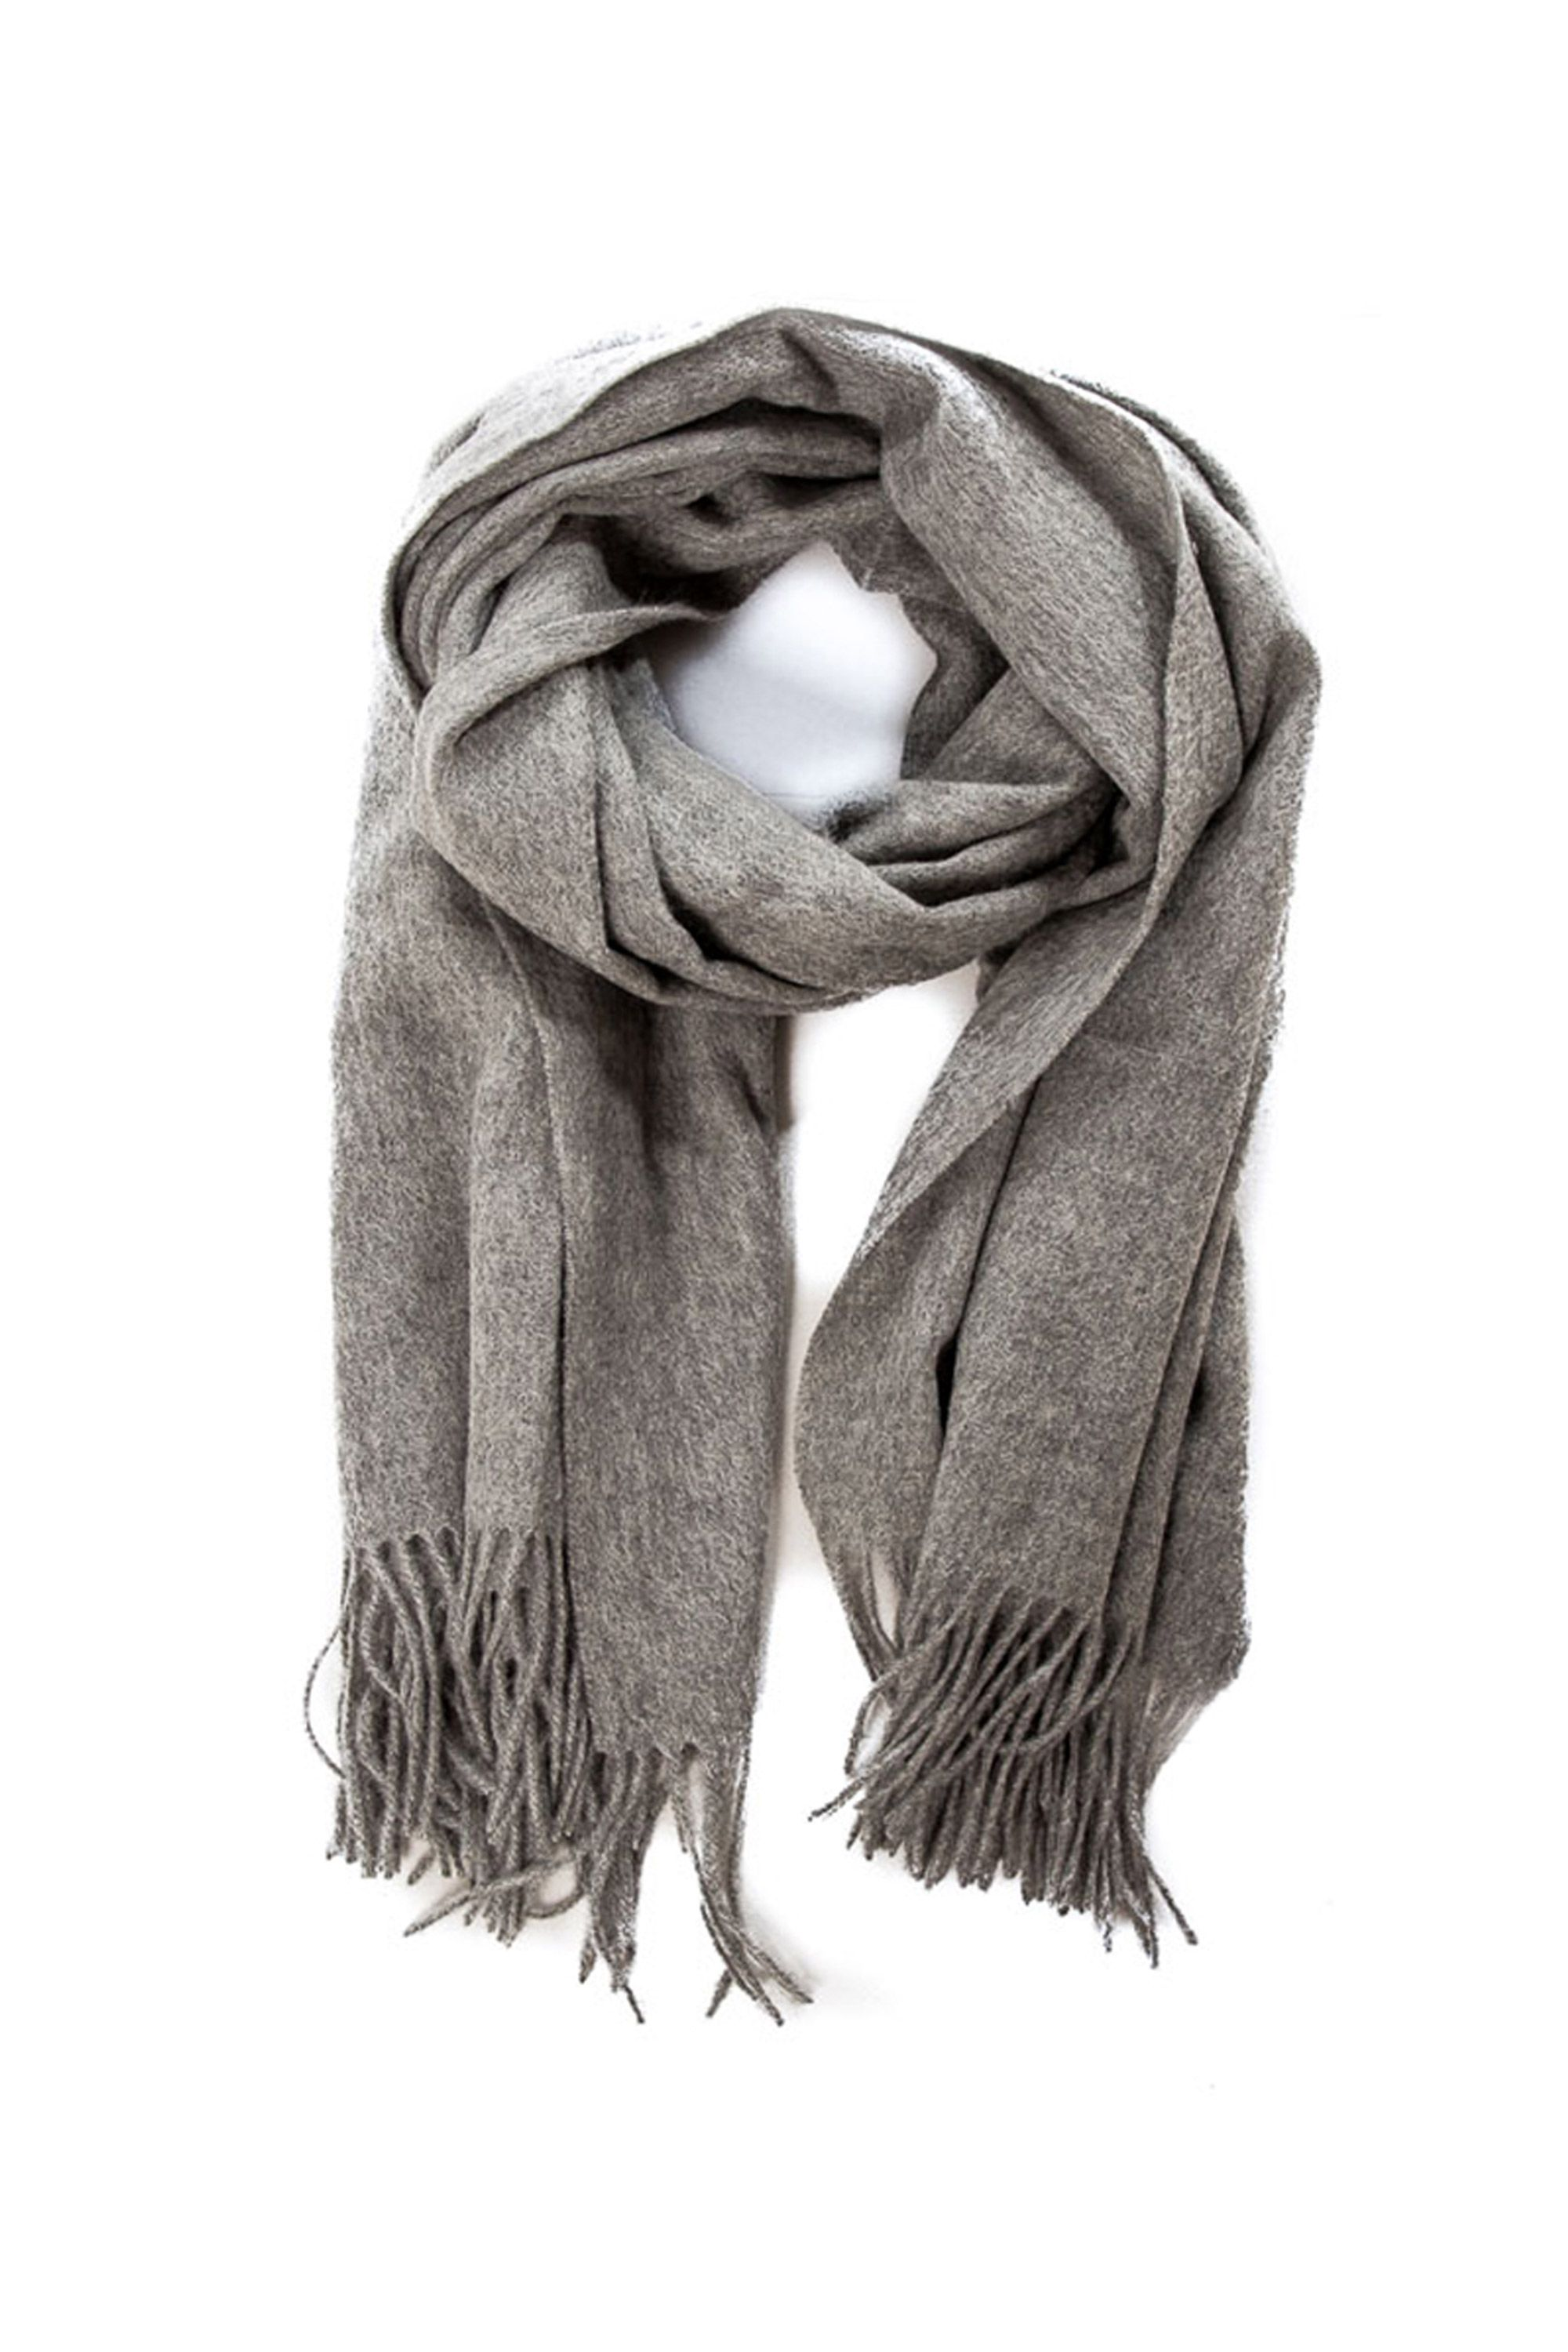 "<p>As House Stark always reminds us, winter is coming, and with it those blustery gales that inevitably set her teeth a-chatter. Enter this long, luxurious wool scarf. Don't be surprised if it doesn't leave her neck until spring. </p>  <p><i data-redactor-tag=""i"">$95, </i><a href=""http://www.drdenimjeans.com/us/charlie-scarf-grey-mix""><i data-redactor-tag=""i"">drdenimjeans.com</i></a></p>"